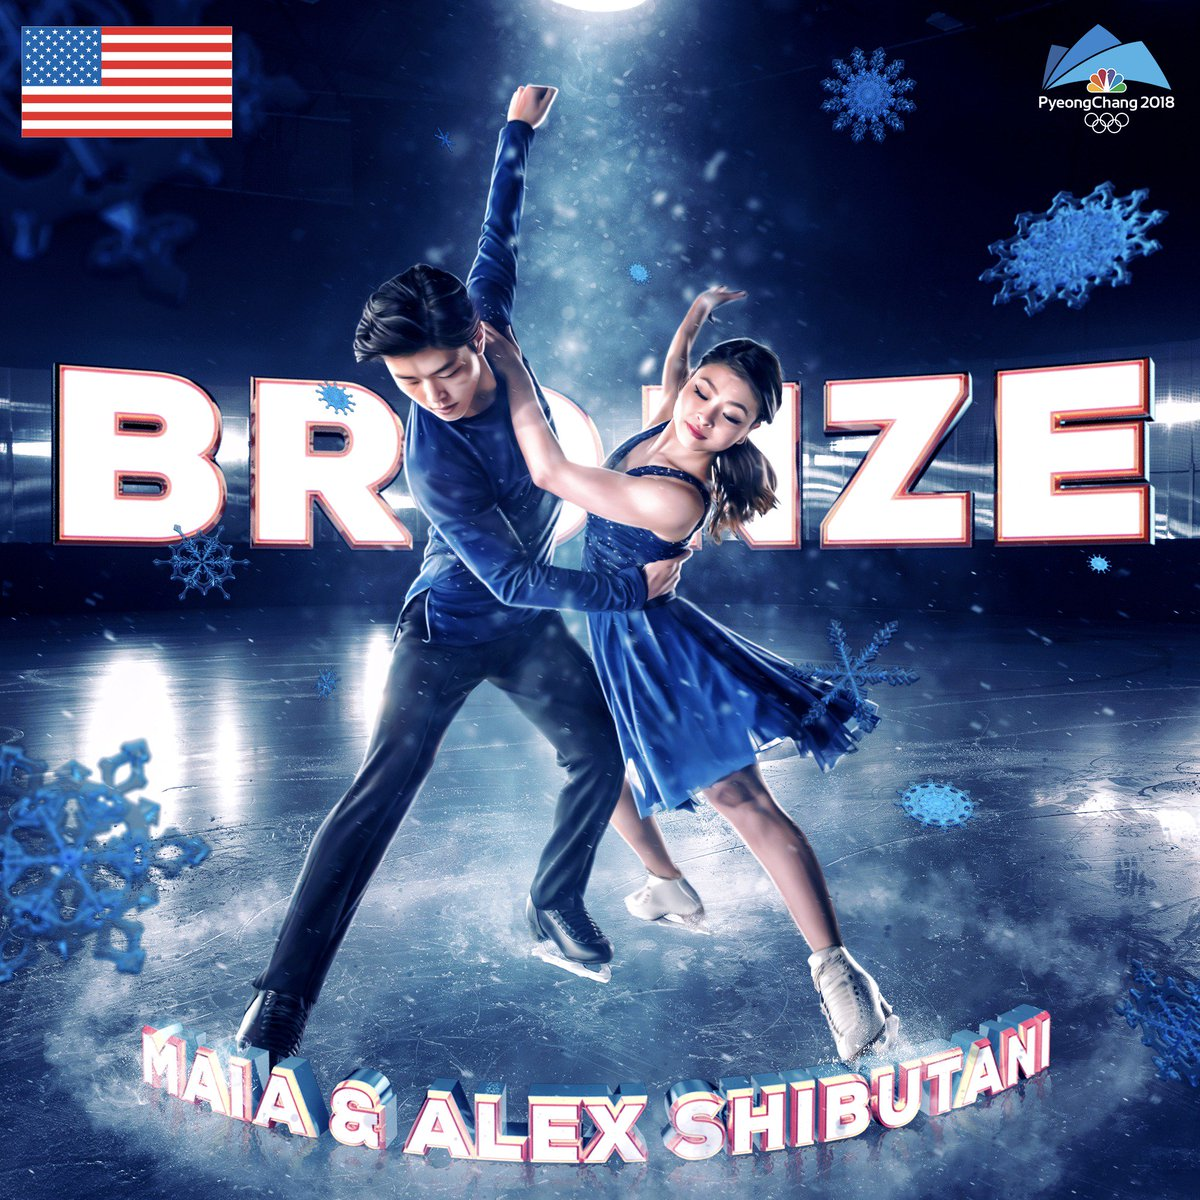 The #ShibSibs have earned #bronze in ice dance! #WinterOlympics